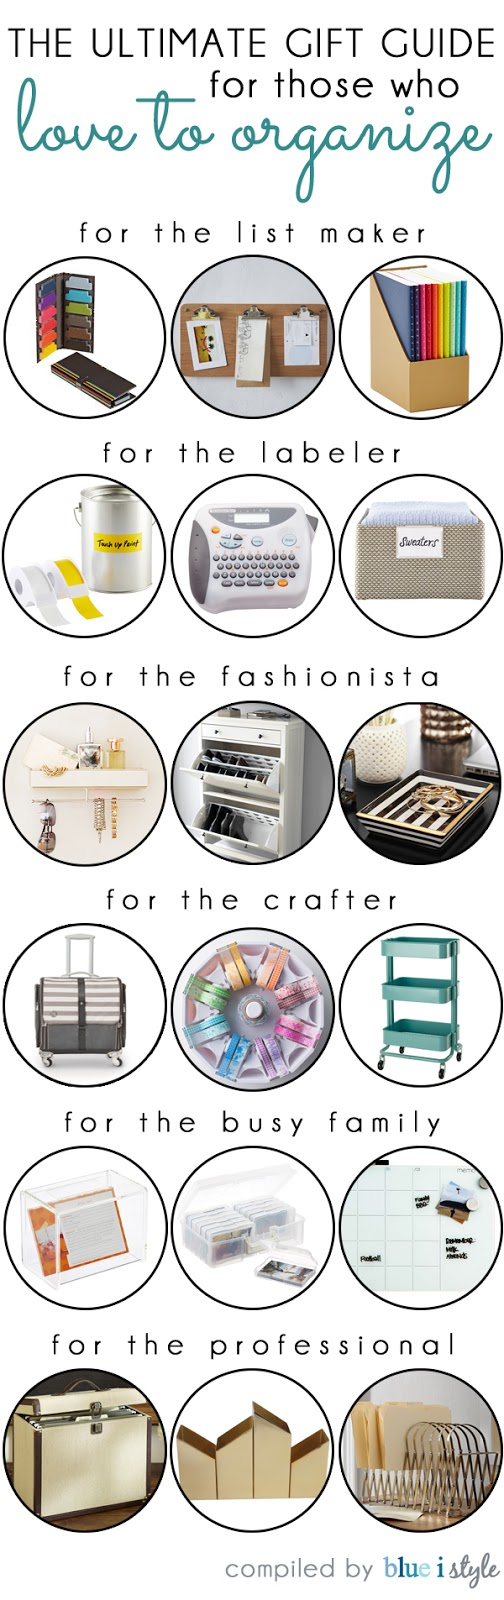 Gift ideas for those who love to organize